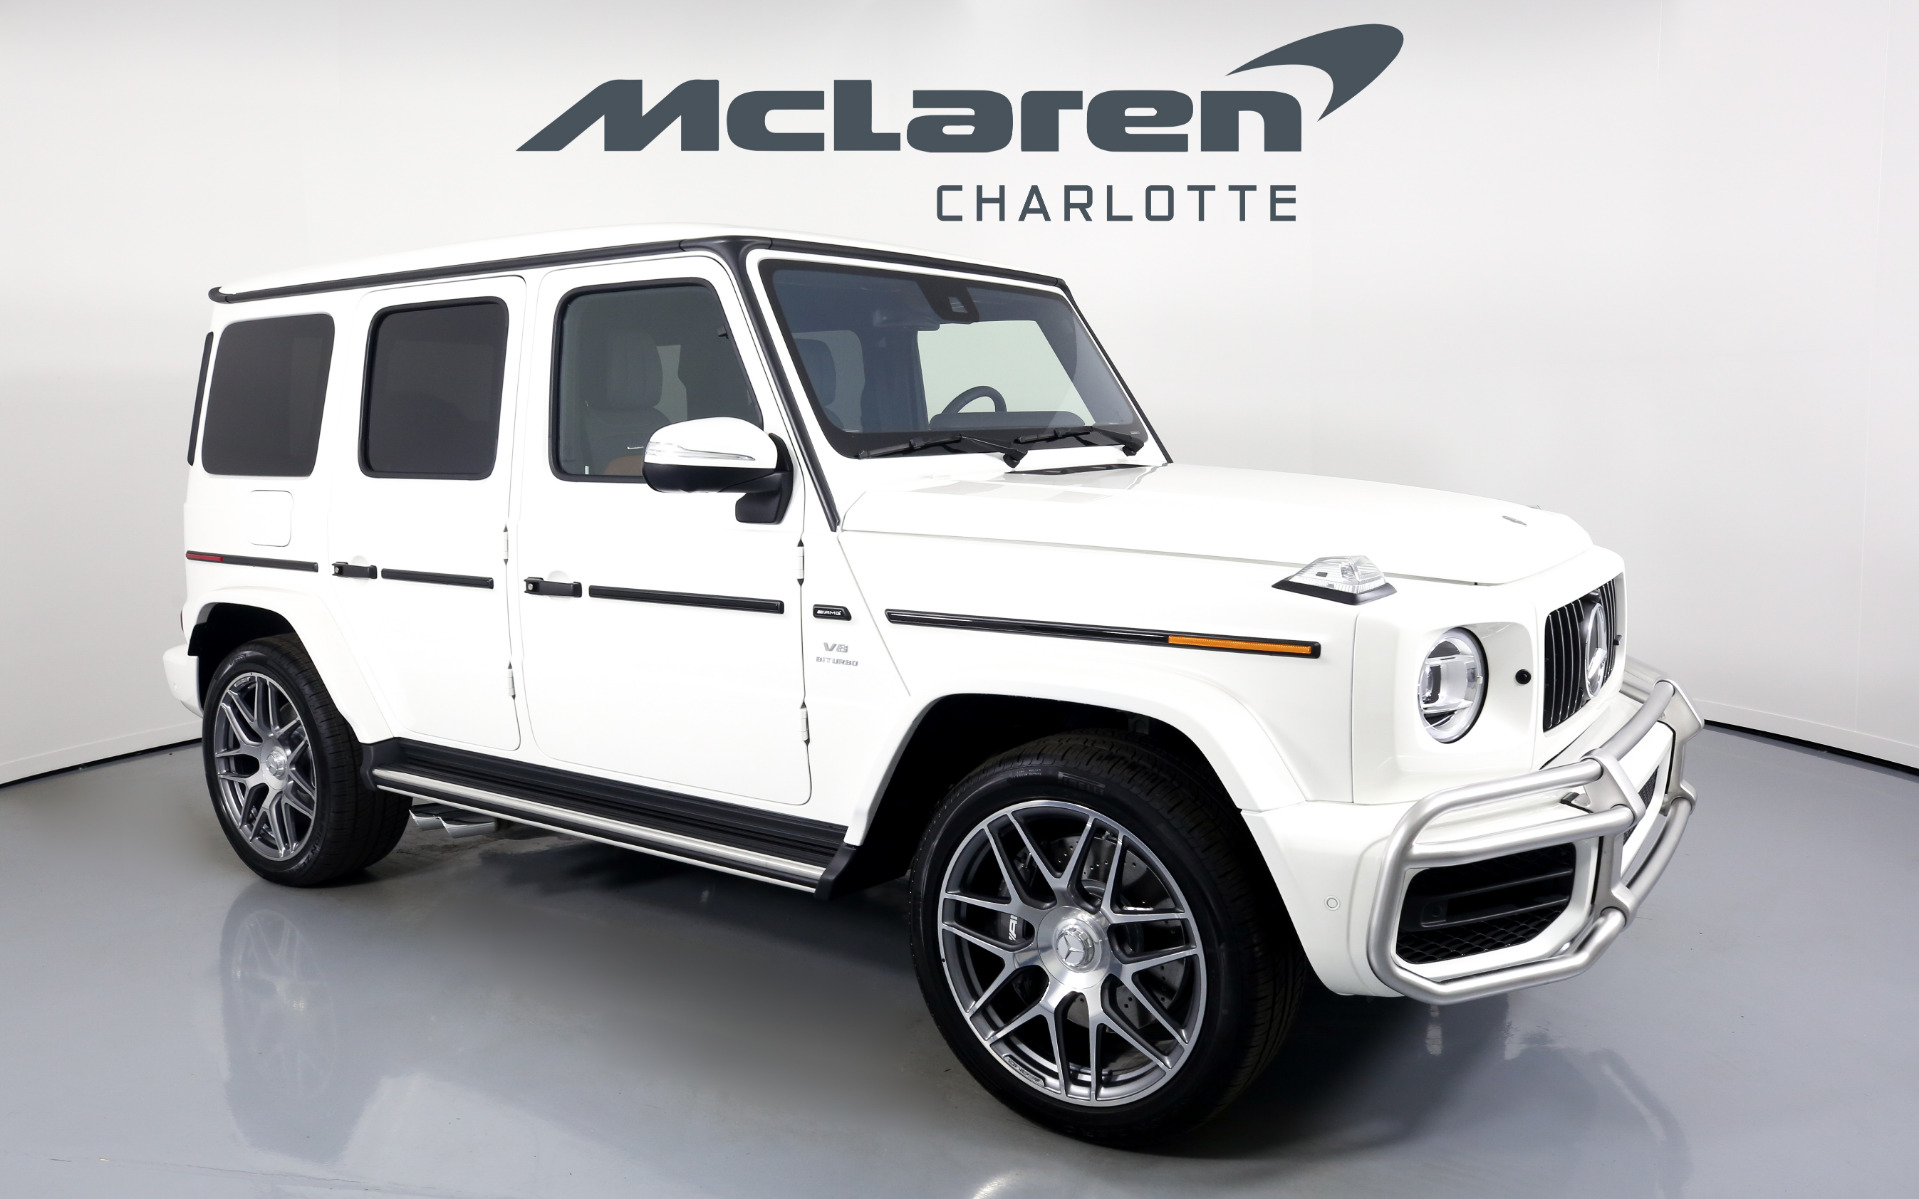 Used 2021 Mercedes Benz G Class Amg G 63 For Sale 239 996 Mclaren Charlotte Stock 372071